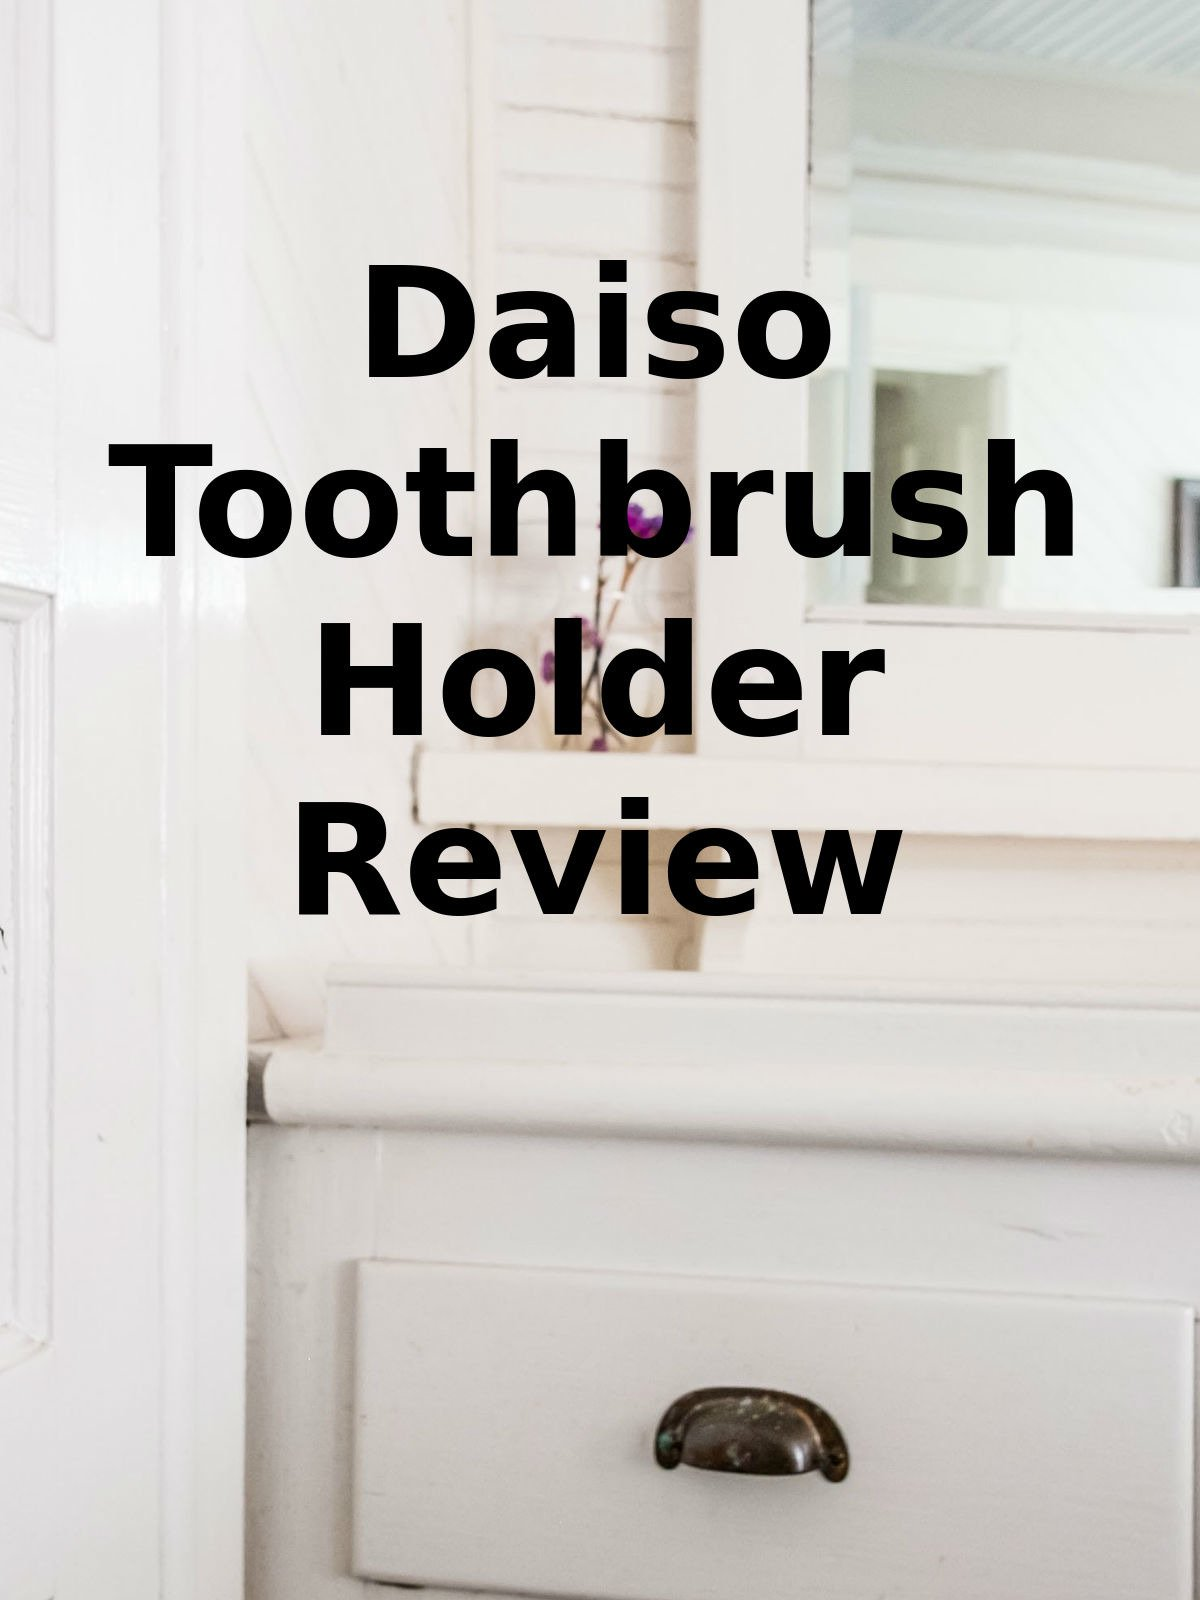 Review: Daiso Toothbrush Holder Review